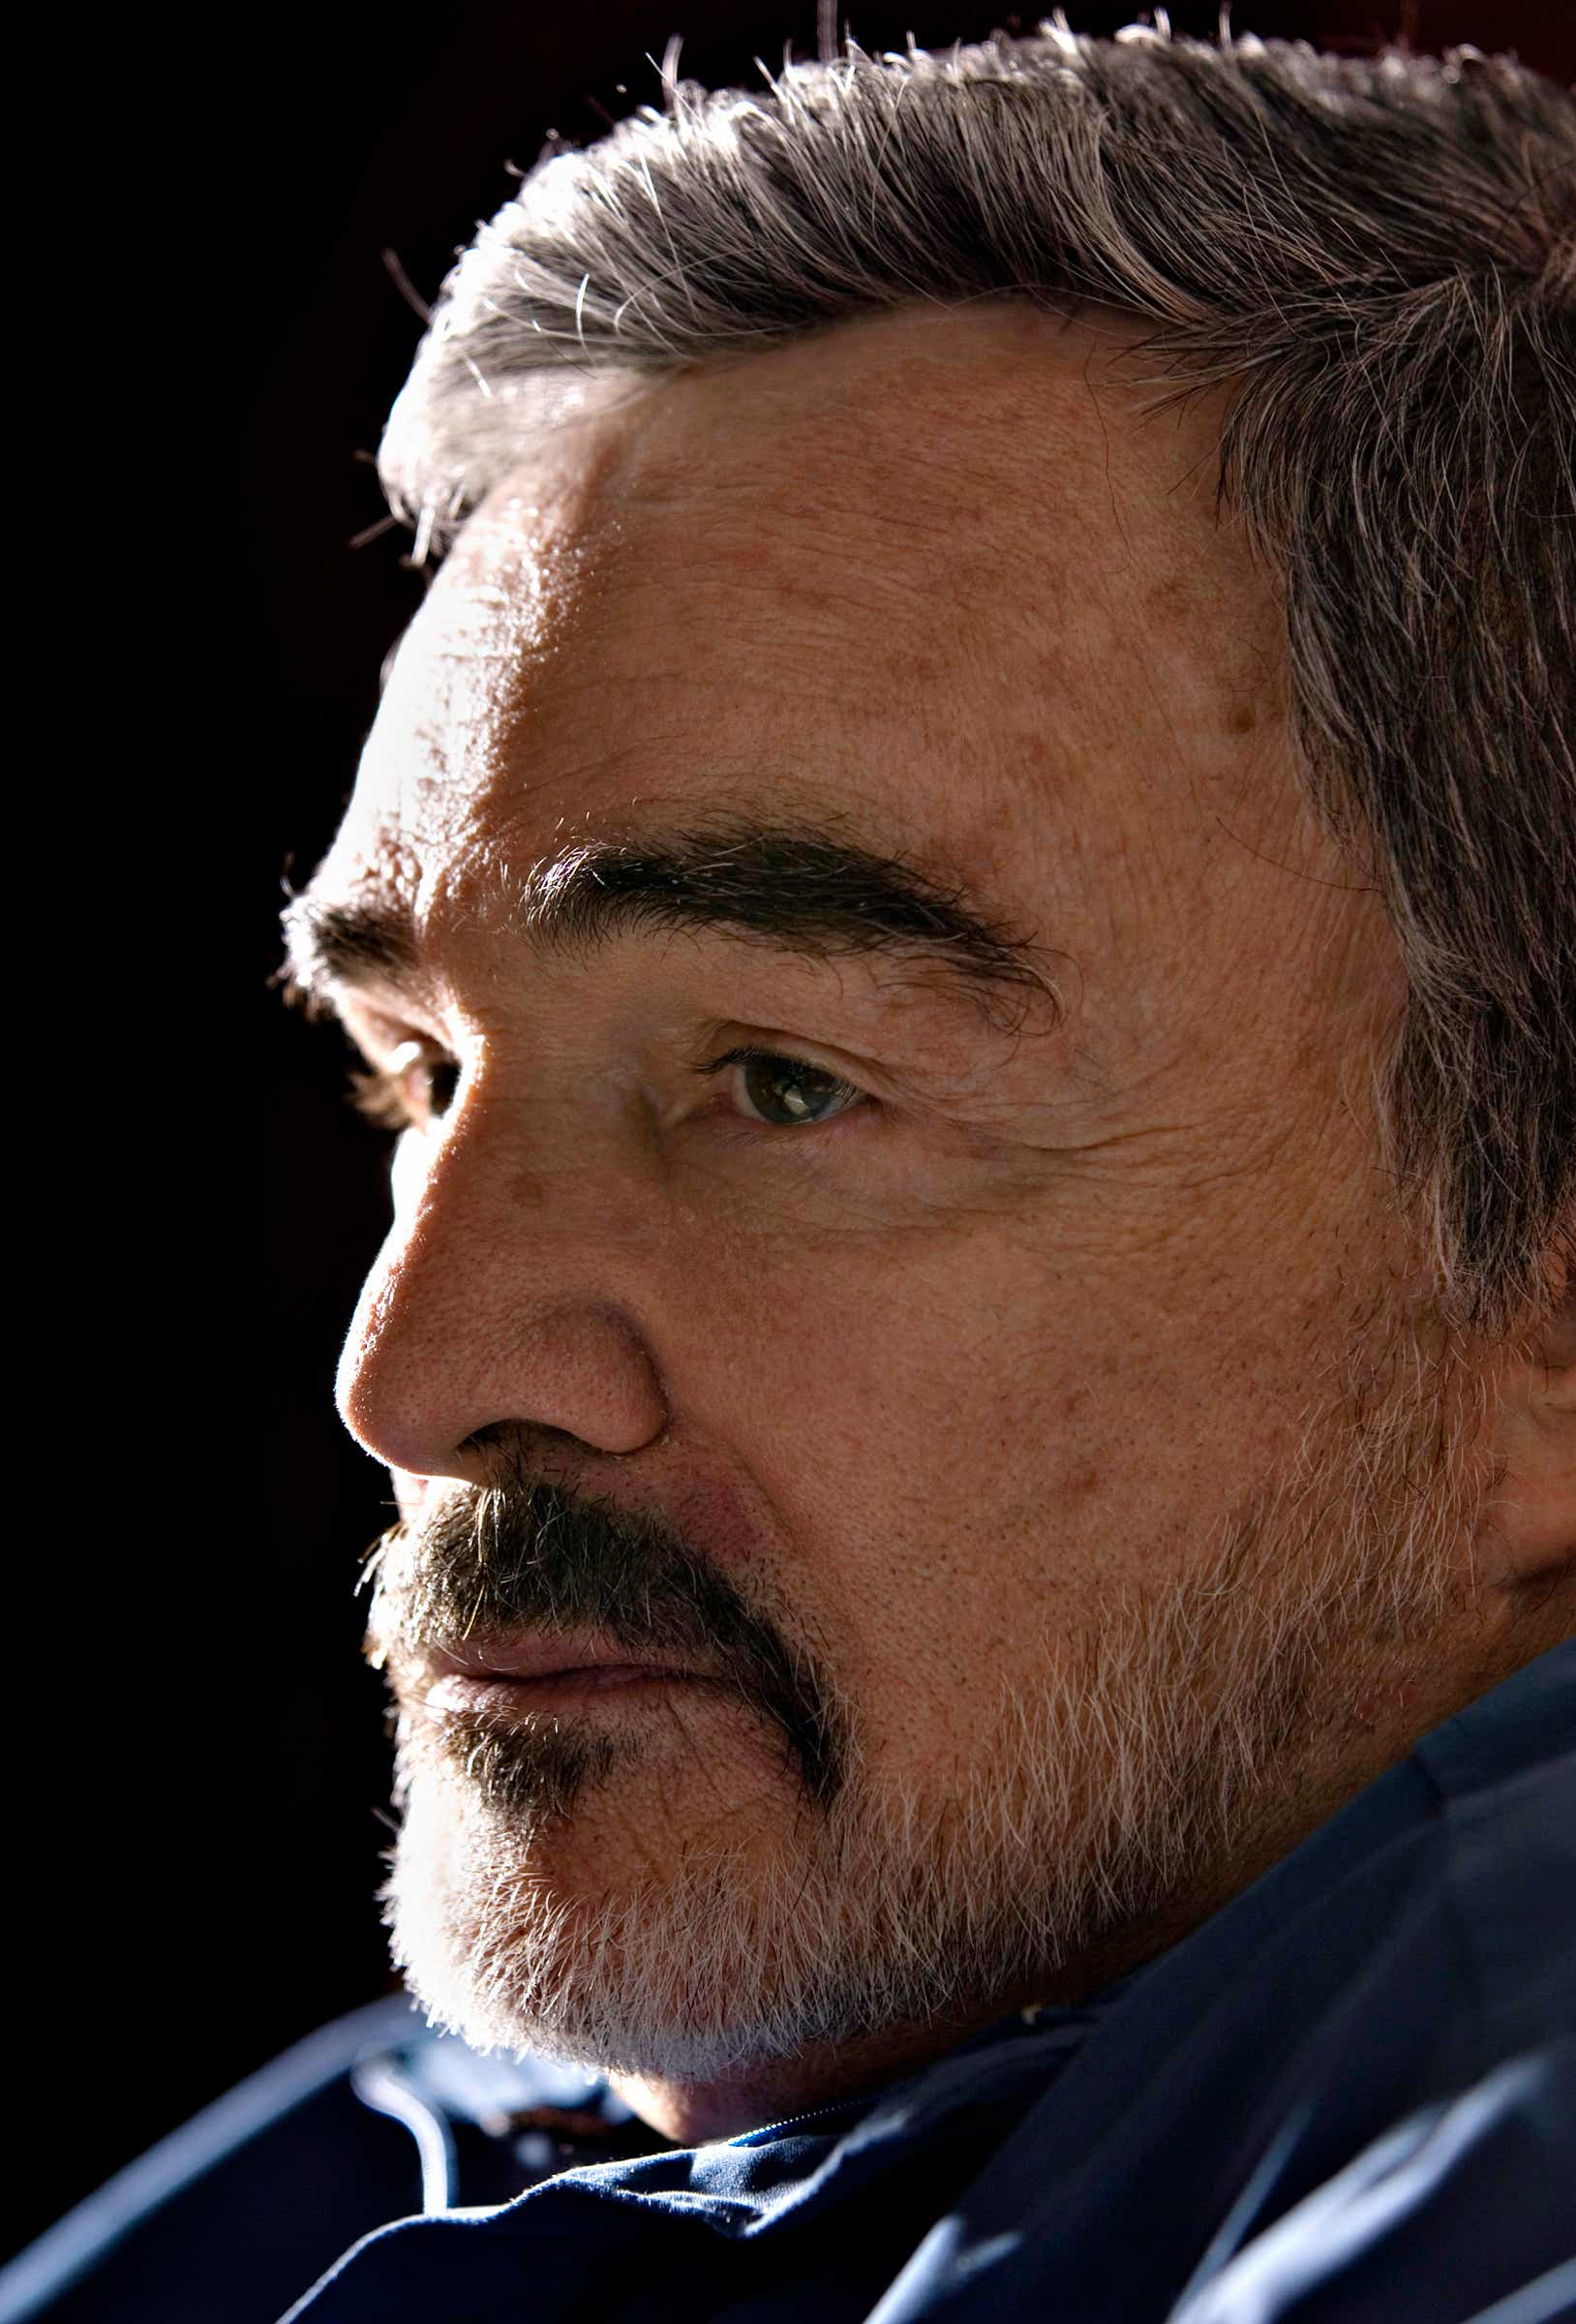 Actor Porno Moro burt reynolds funeral: actor laid to rest in west palm beach